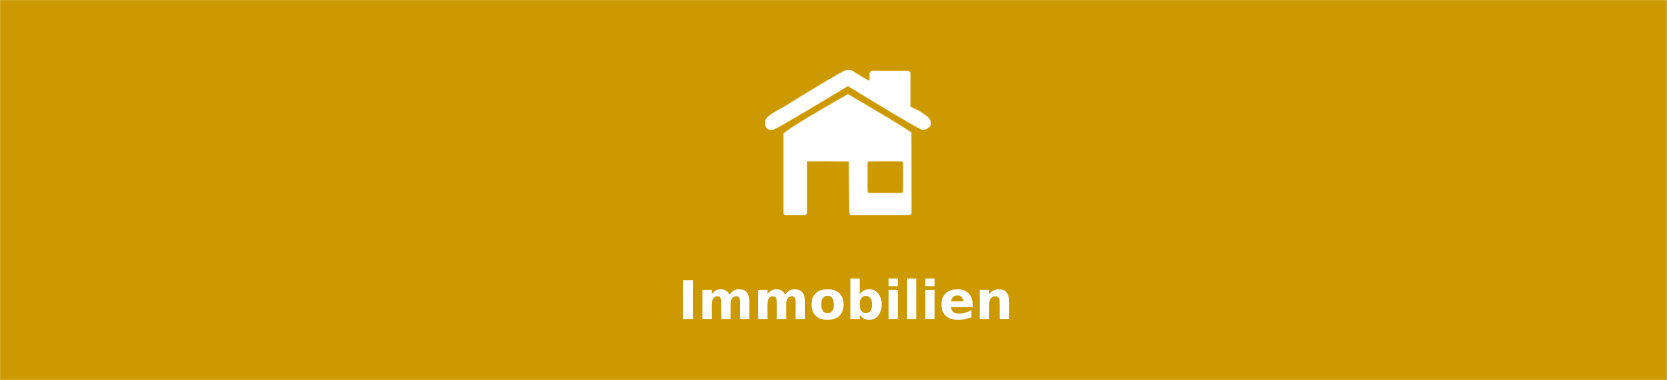 immobilienbanner.png